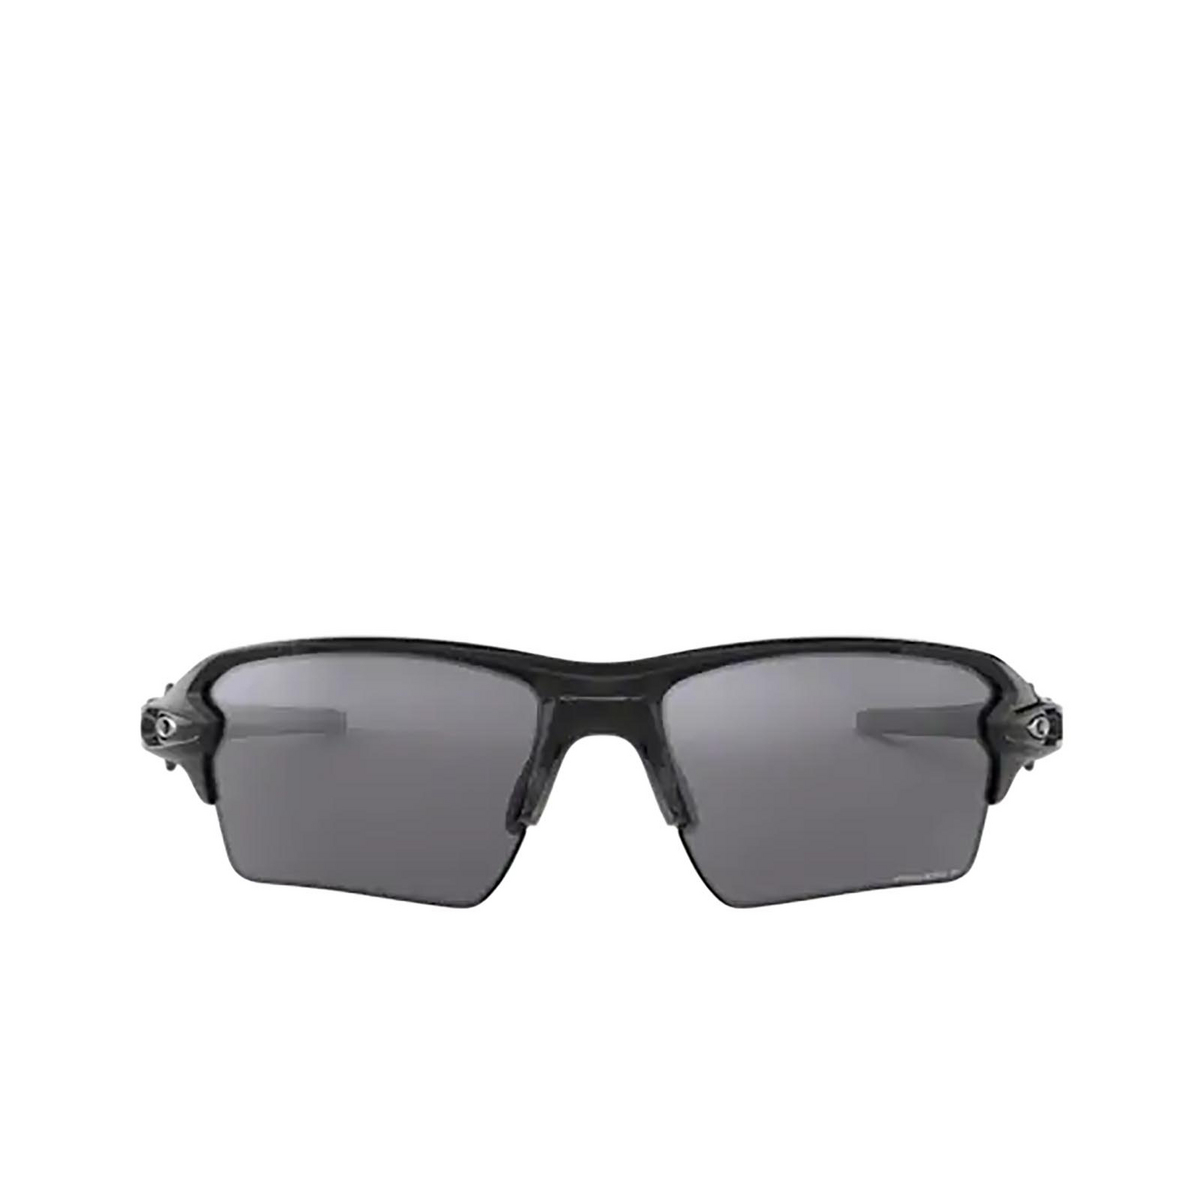 Oakley® Rectangle Sunglasses: Flak 2.0 Xl OO9188 color Polished Black 918872 - front view.